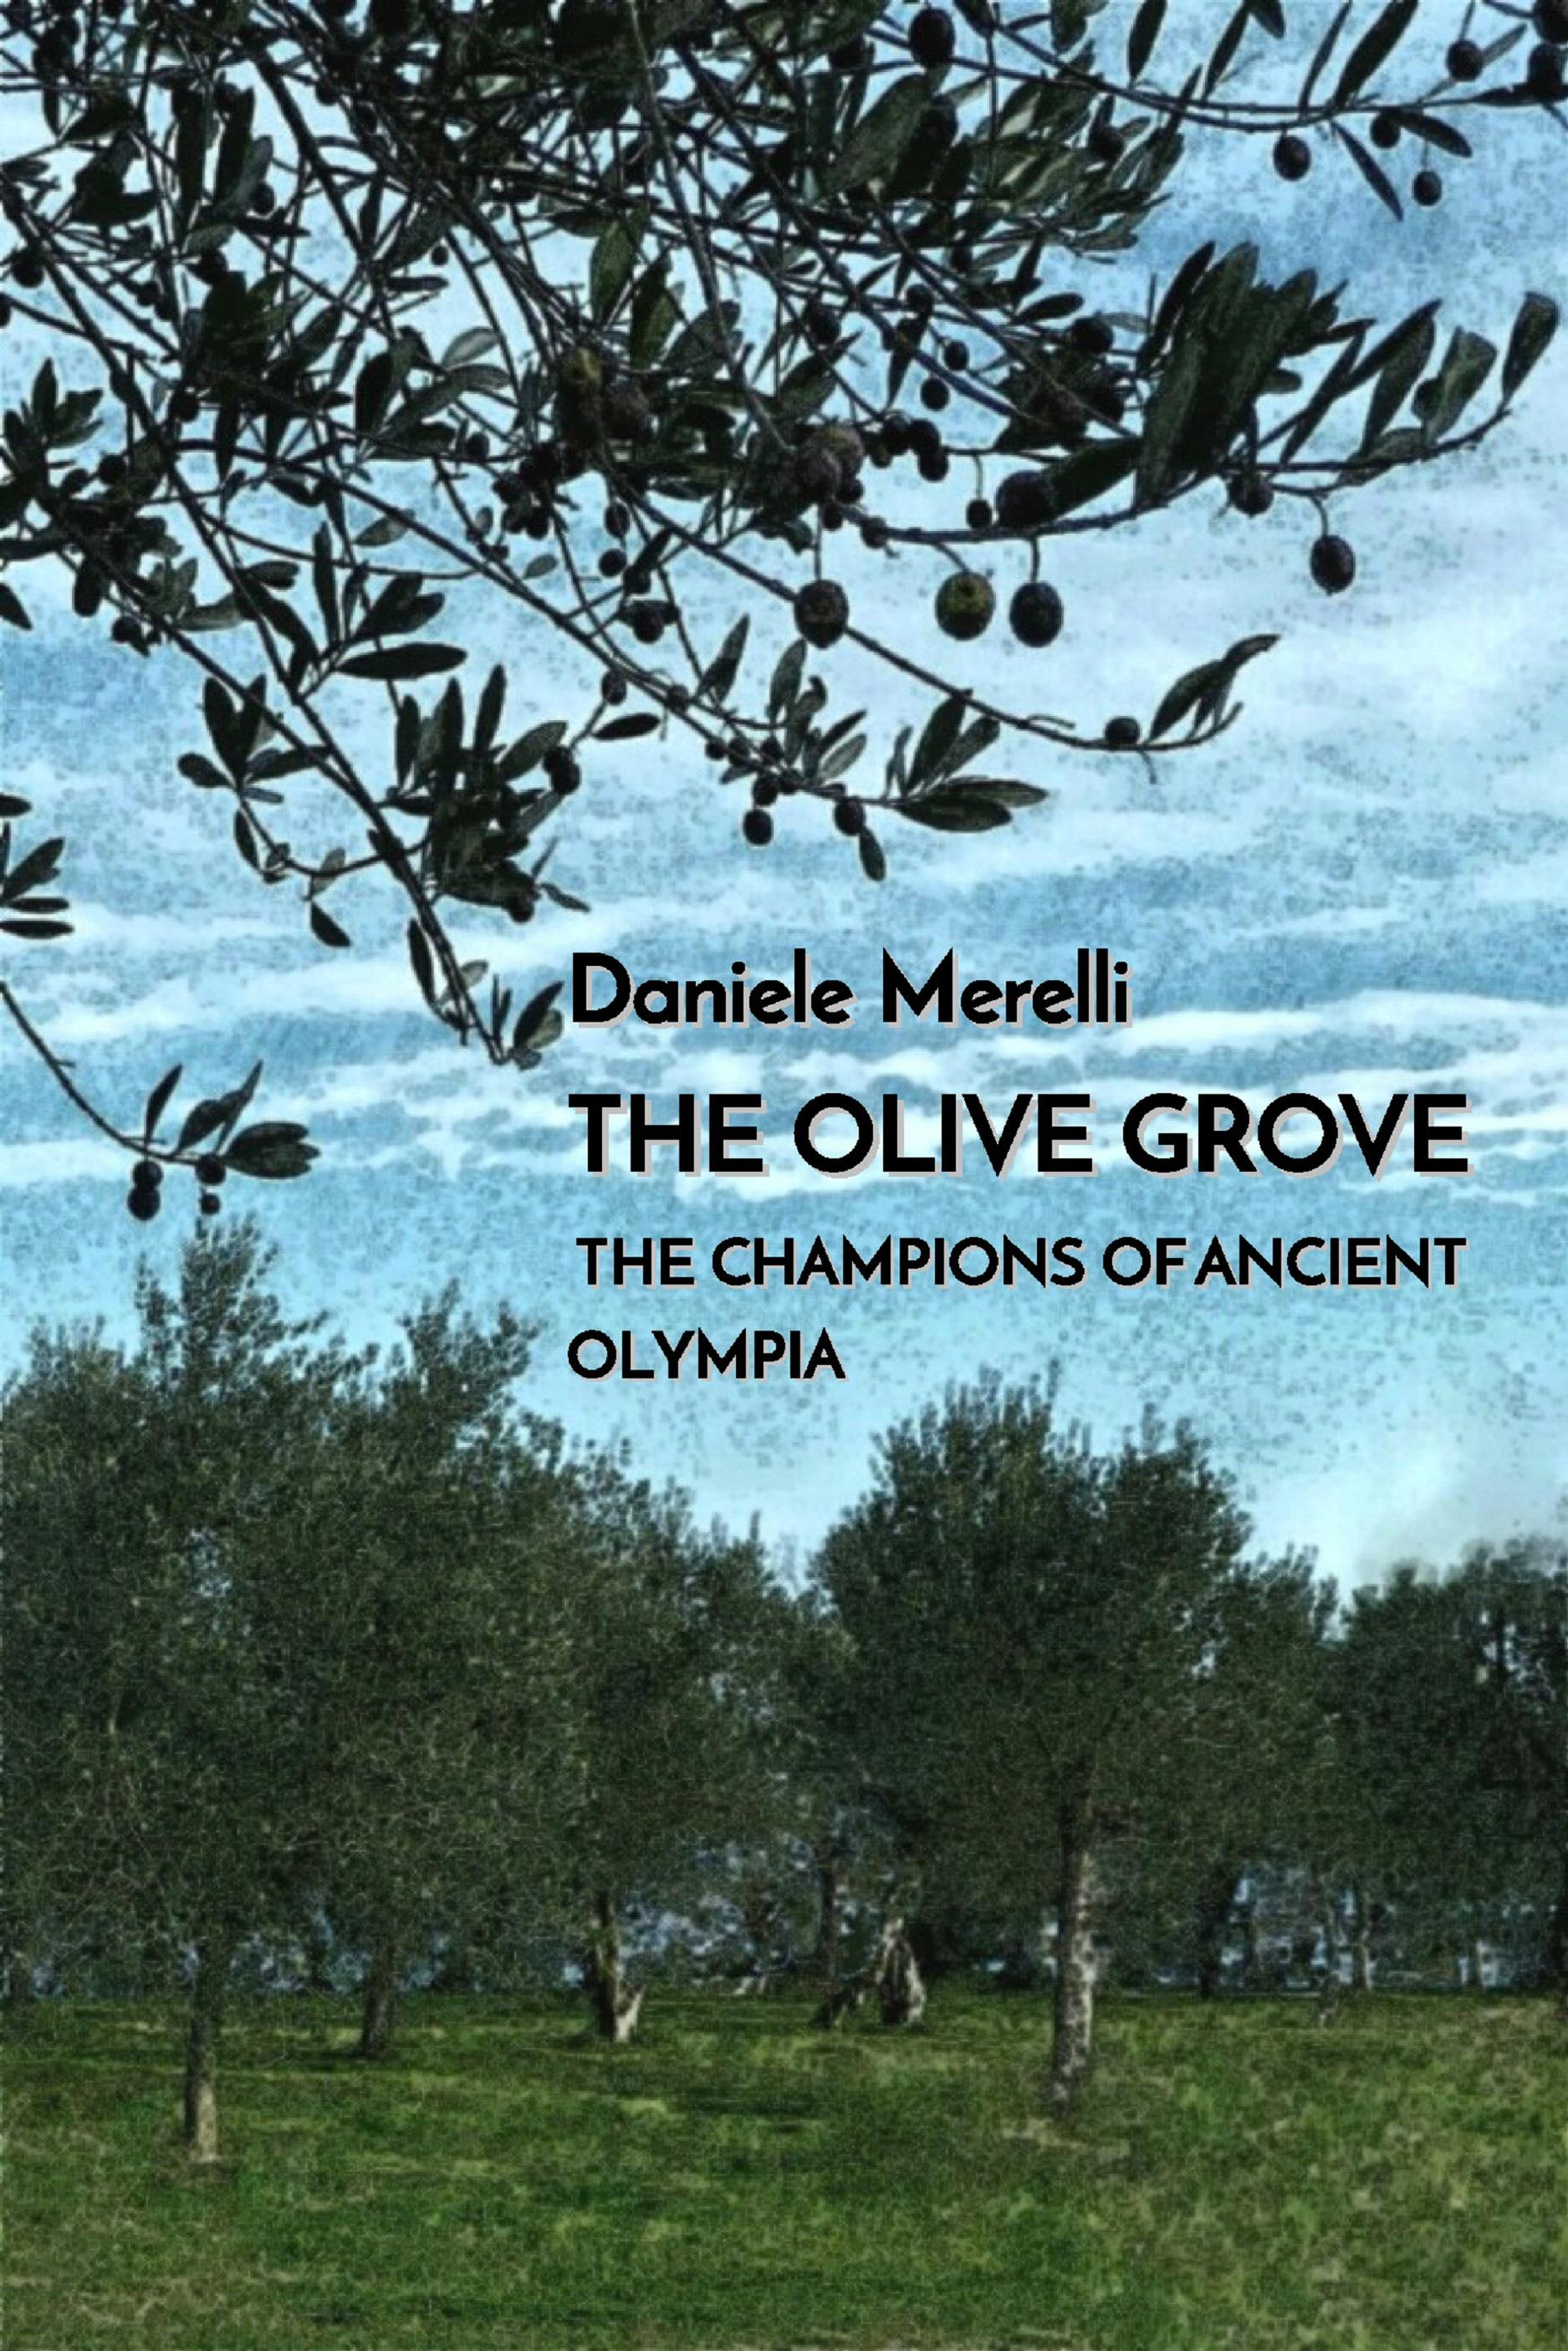 The olive grove. The champions of ancient Olympia